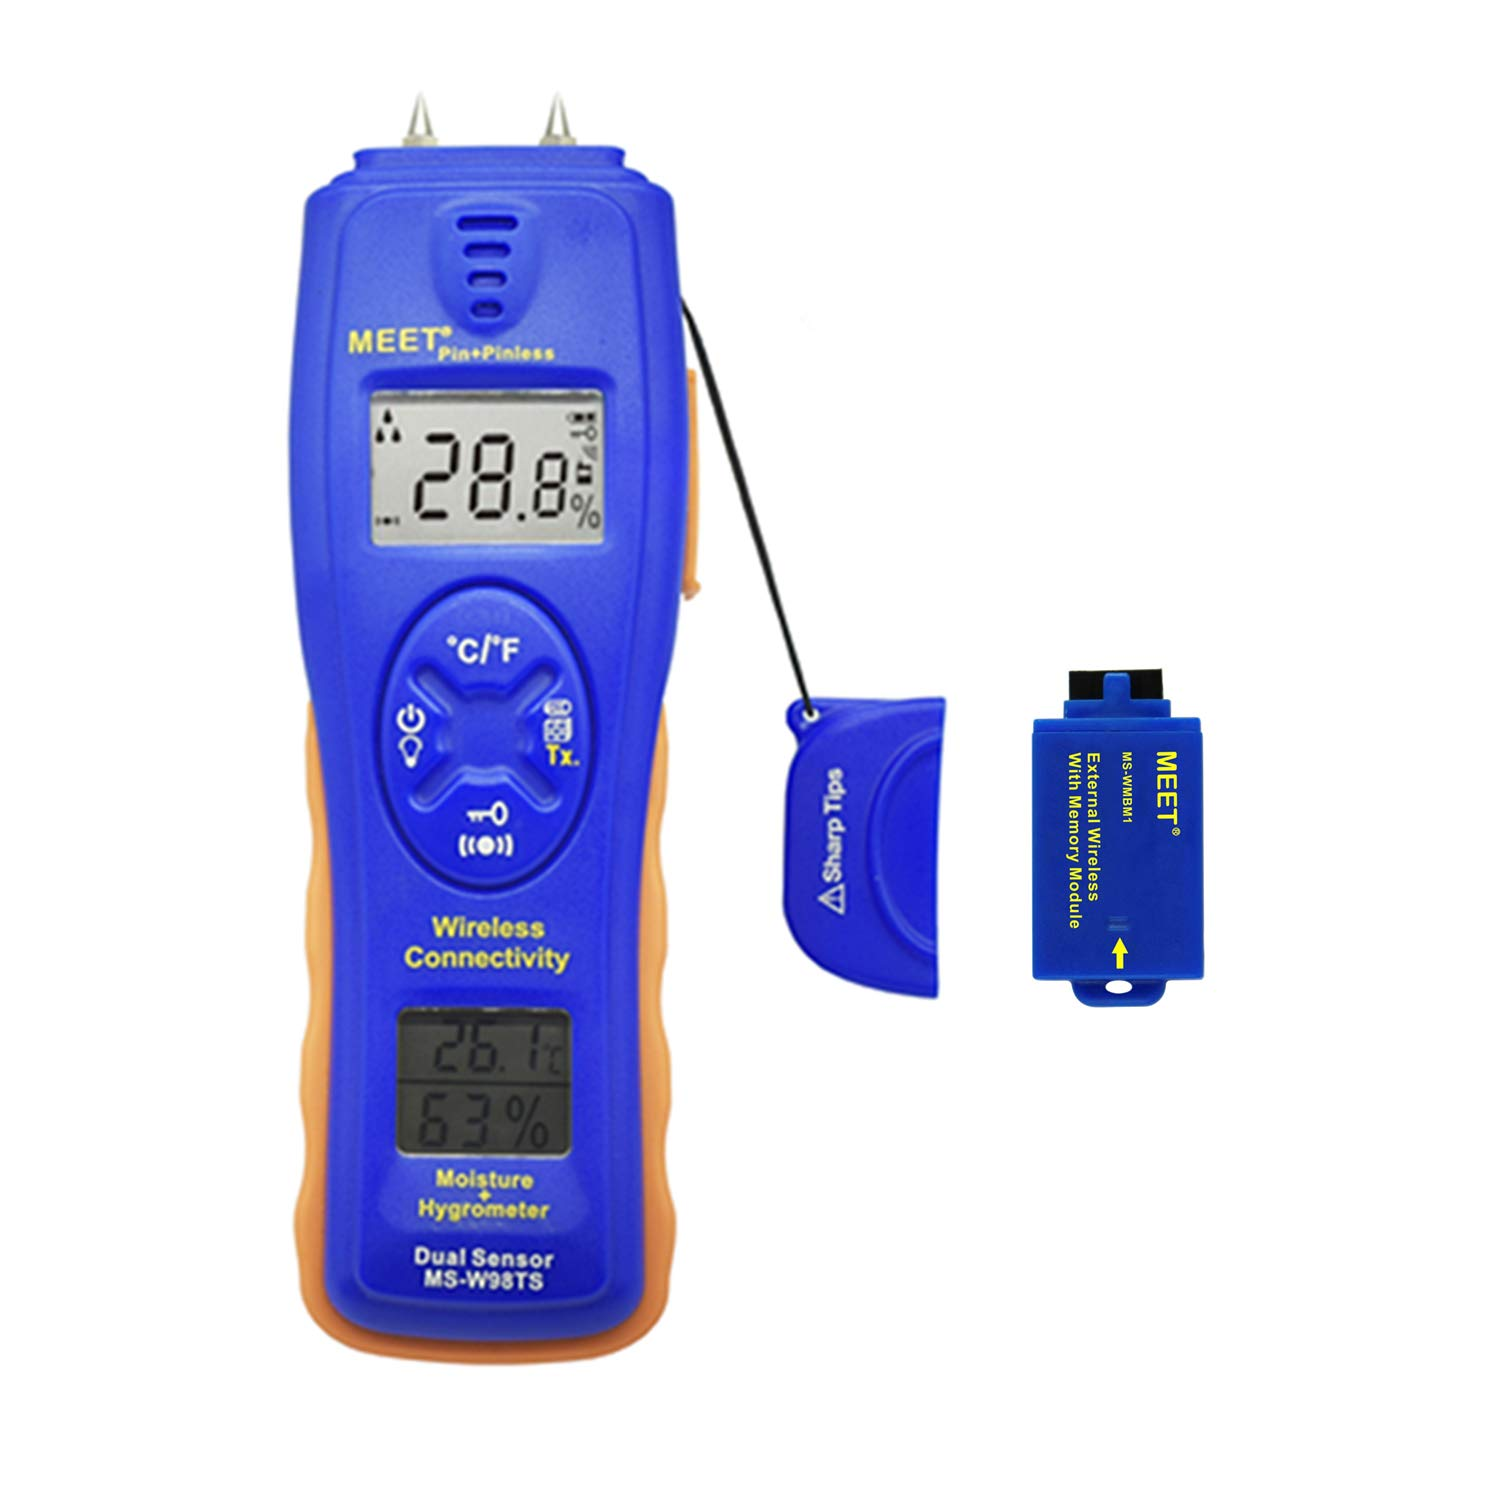 Meet Wireless Connectivity Moisture Meter,Air Temperature Humidity Display,2 pins Type,Wood, Concrete, Drywall, Carpet Moisture Tester Detector (MS-W98TS+MS-WMBM1)